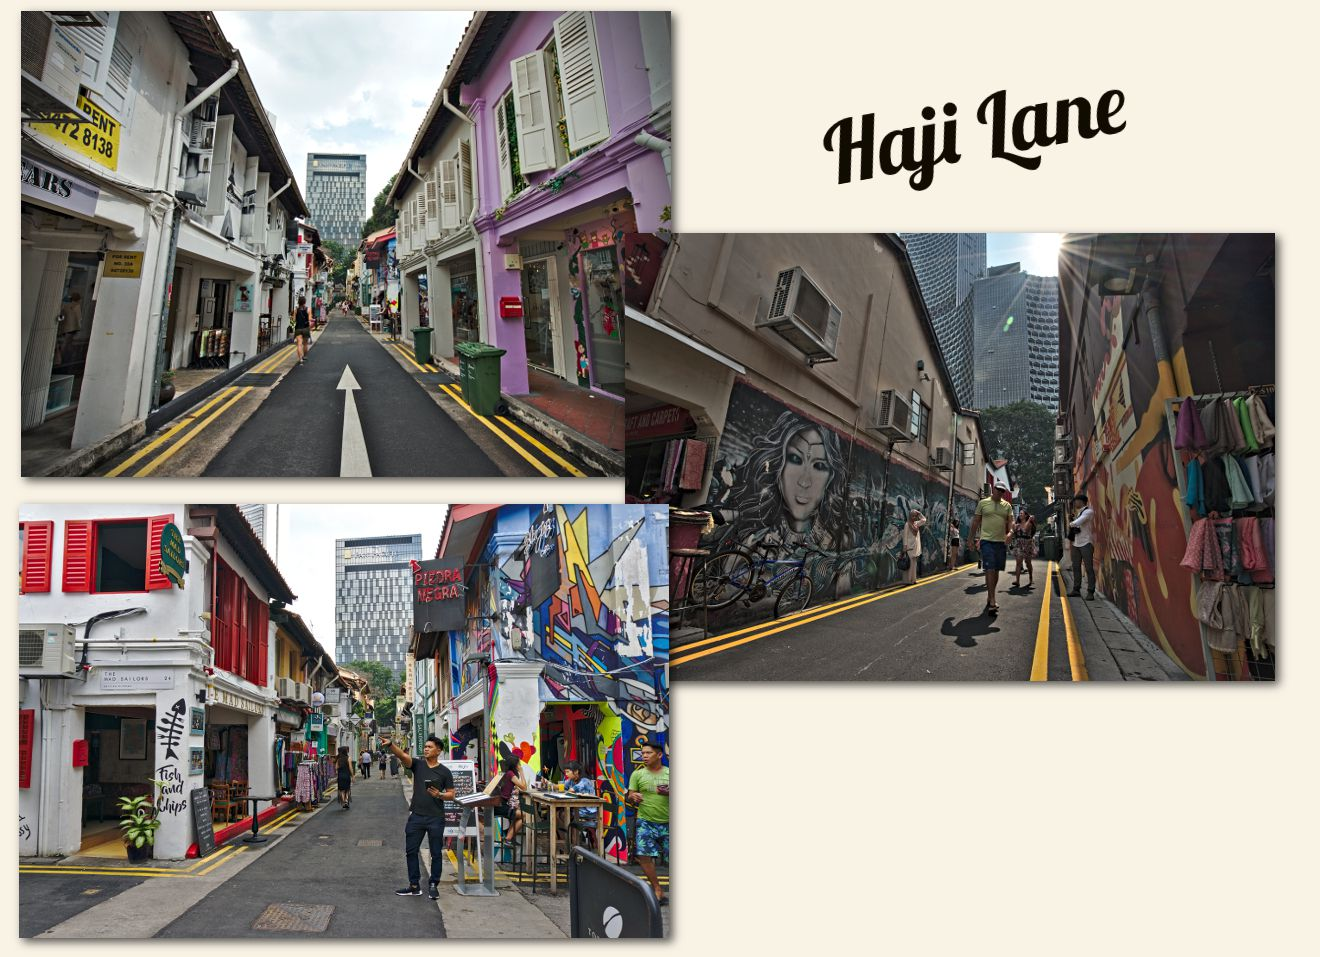 quartier de Haji Lane